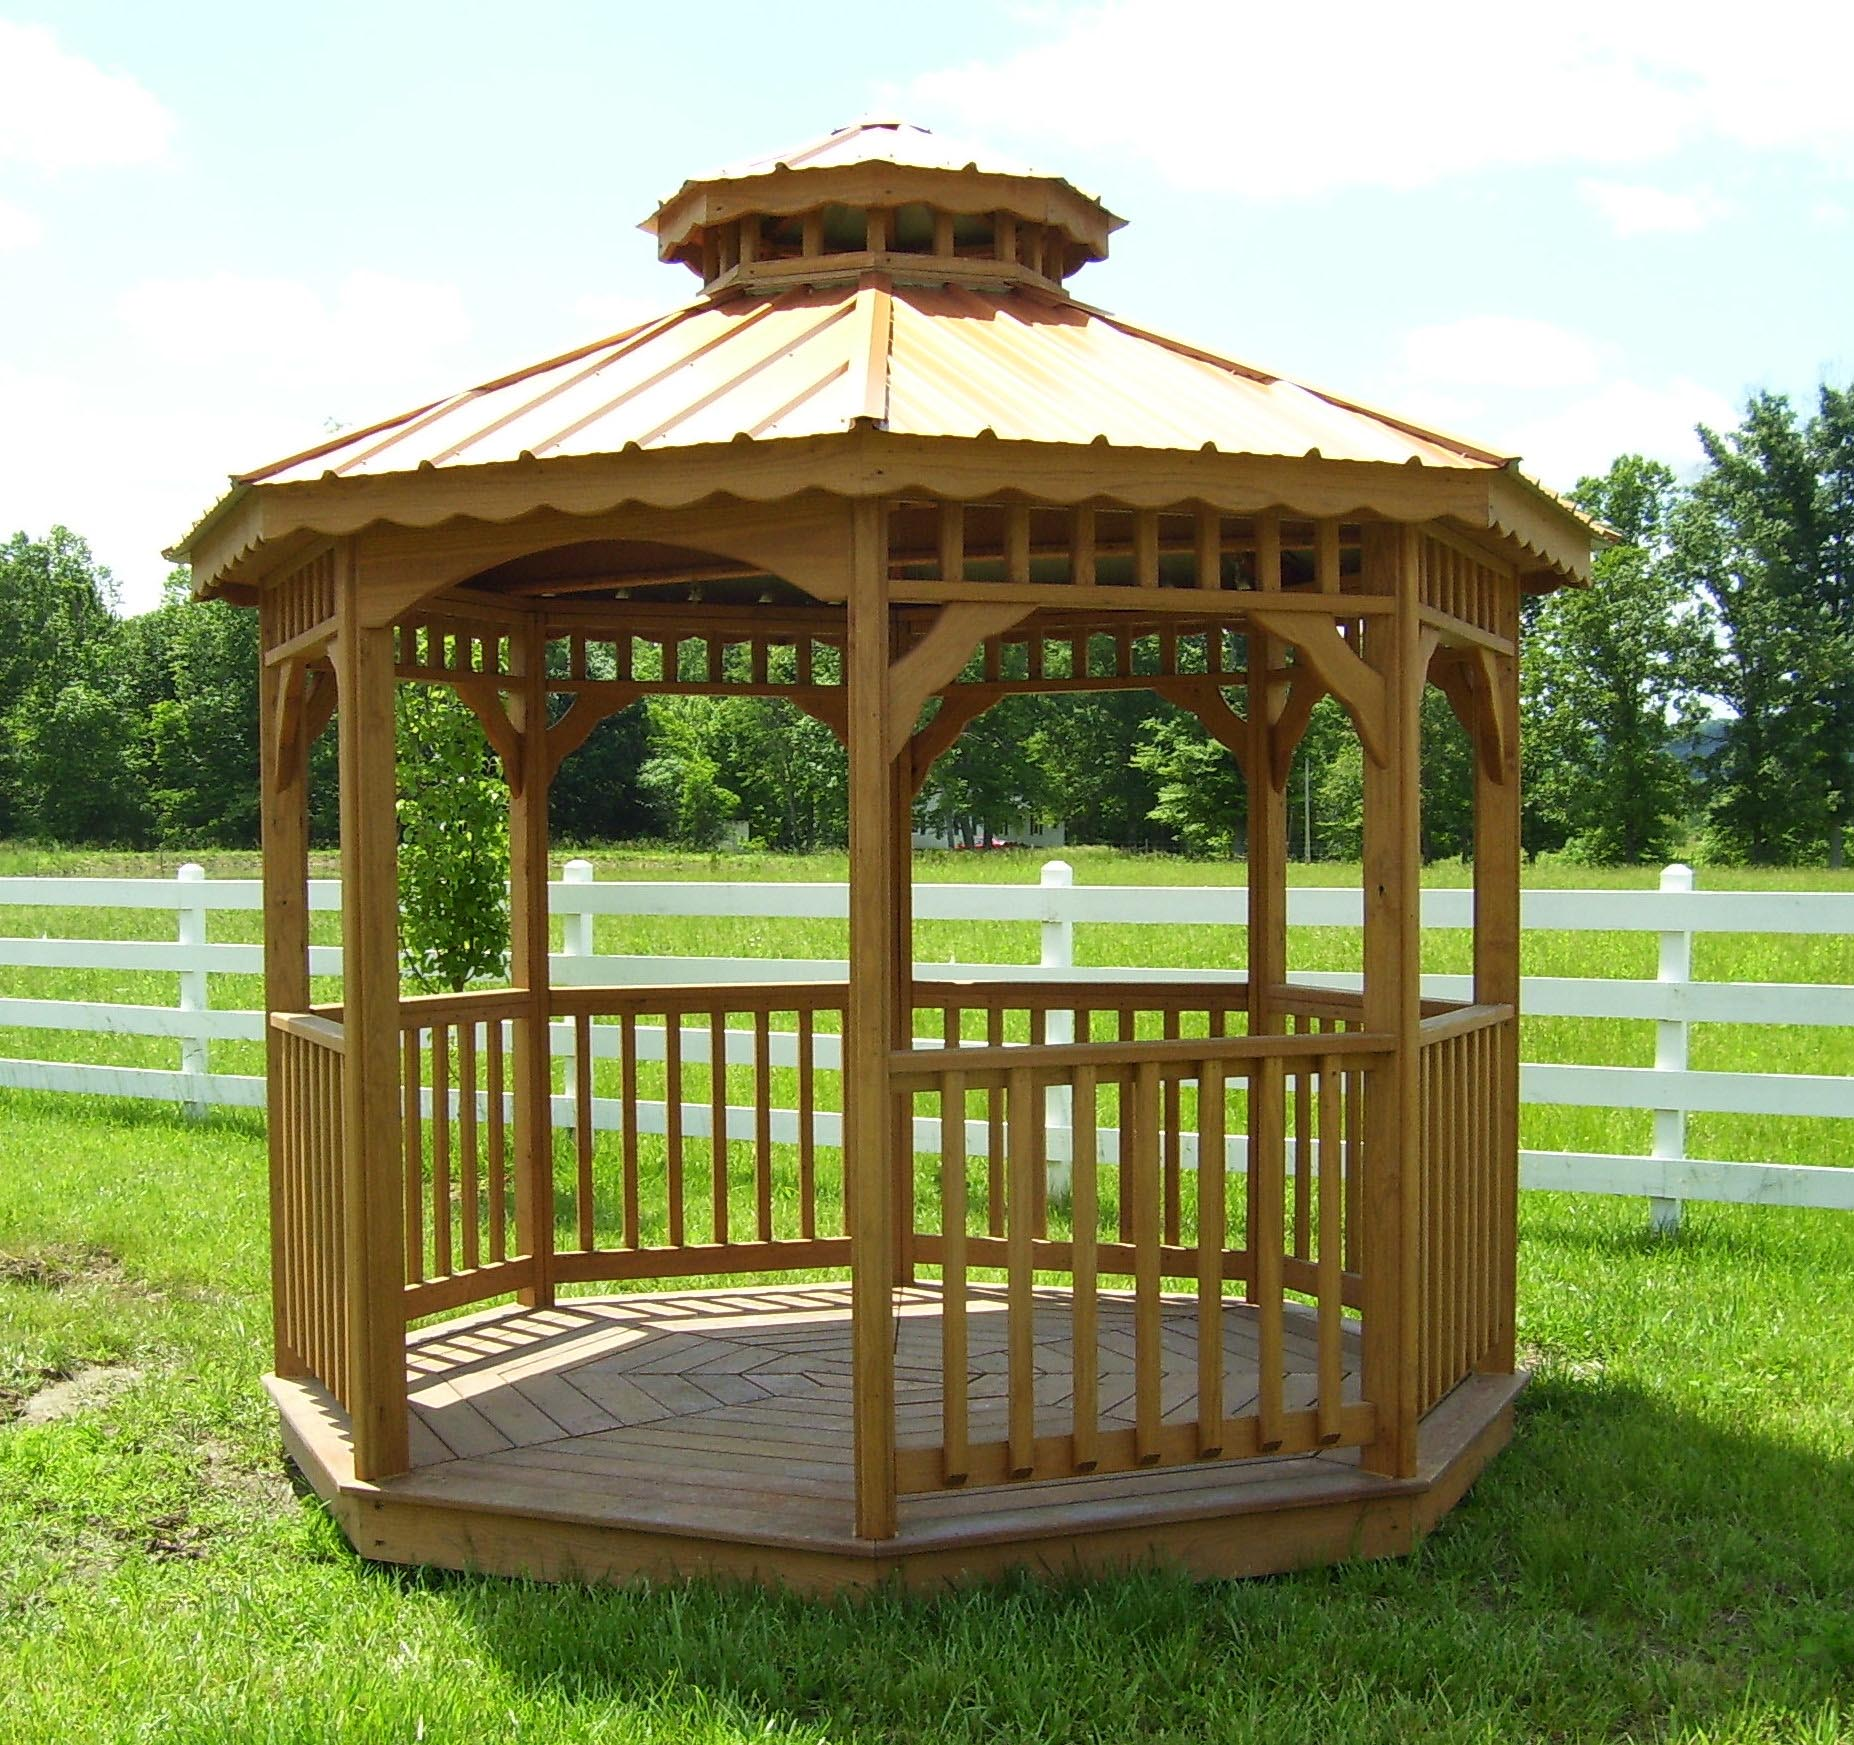 Screen for outdoor gazebo pergola design ideas for Pergolas para jardin